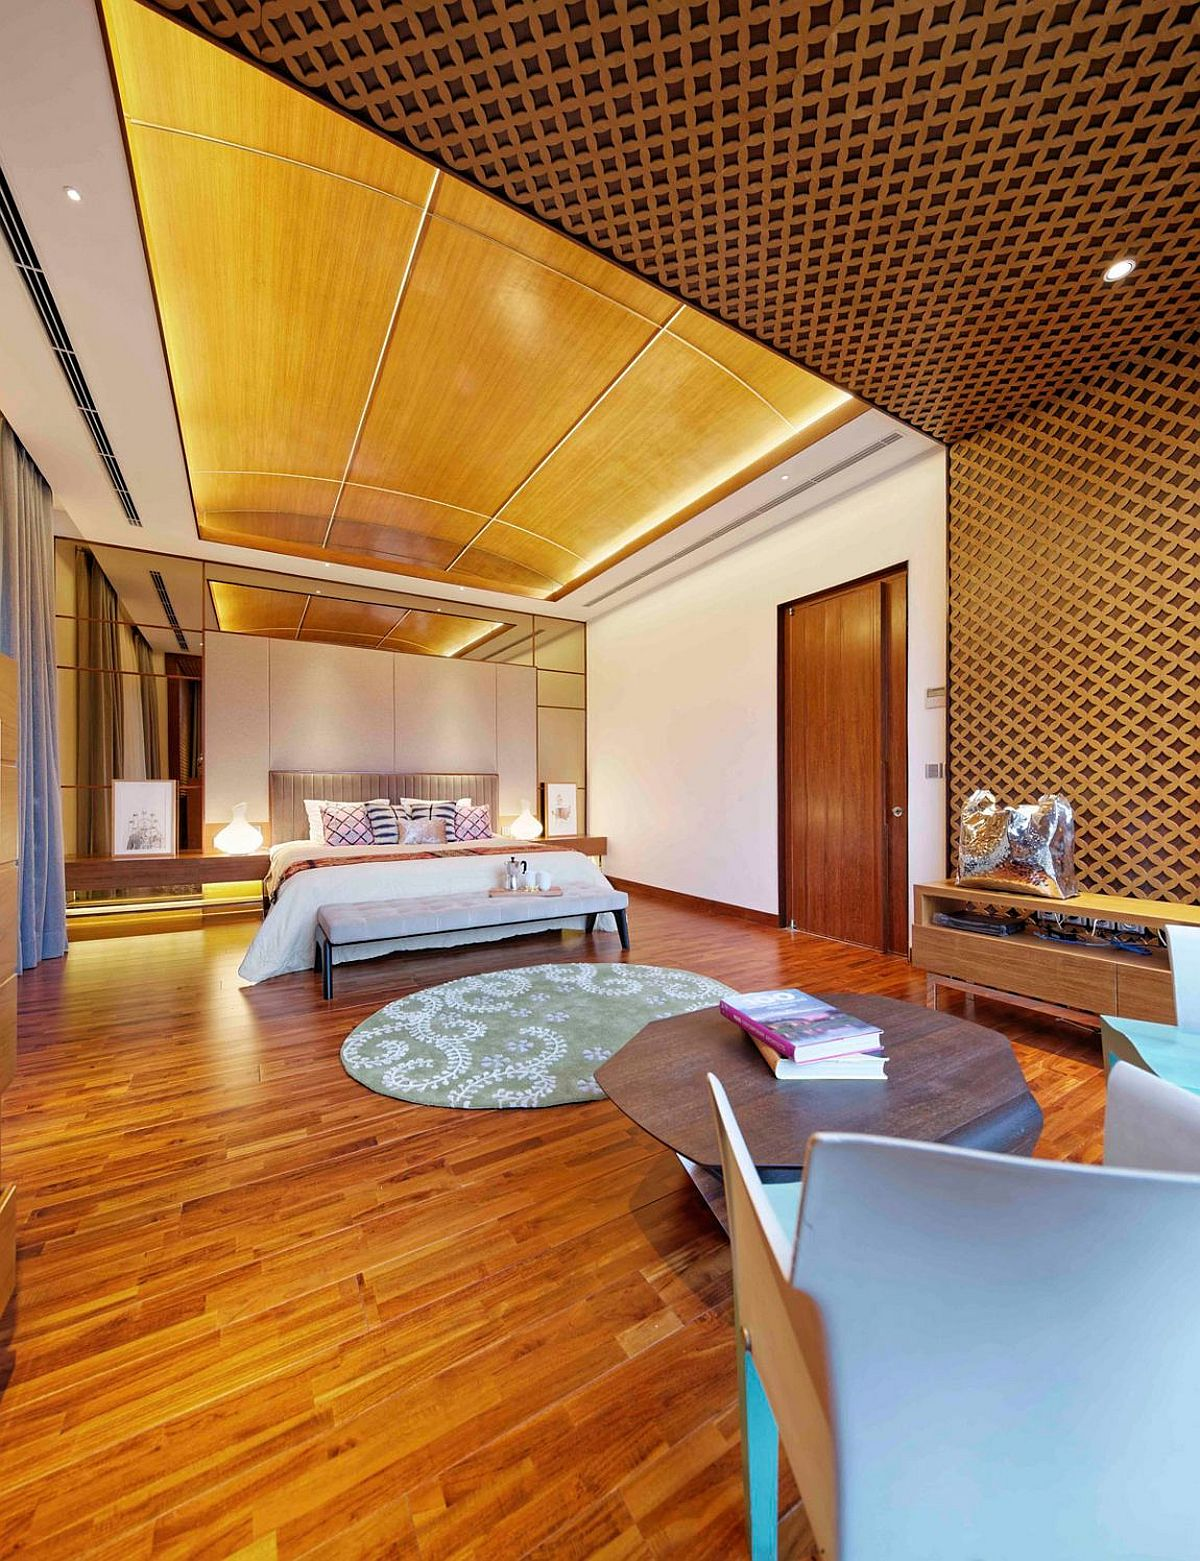 Lavish master bedroom combines modern and Javanese design elements